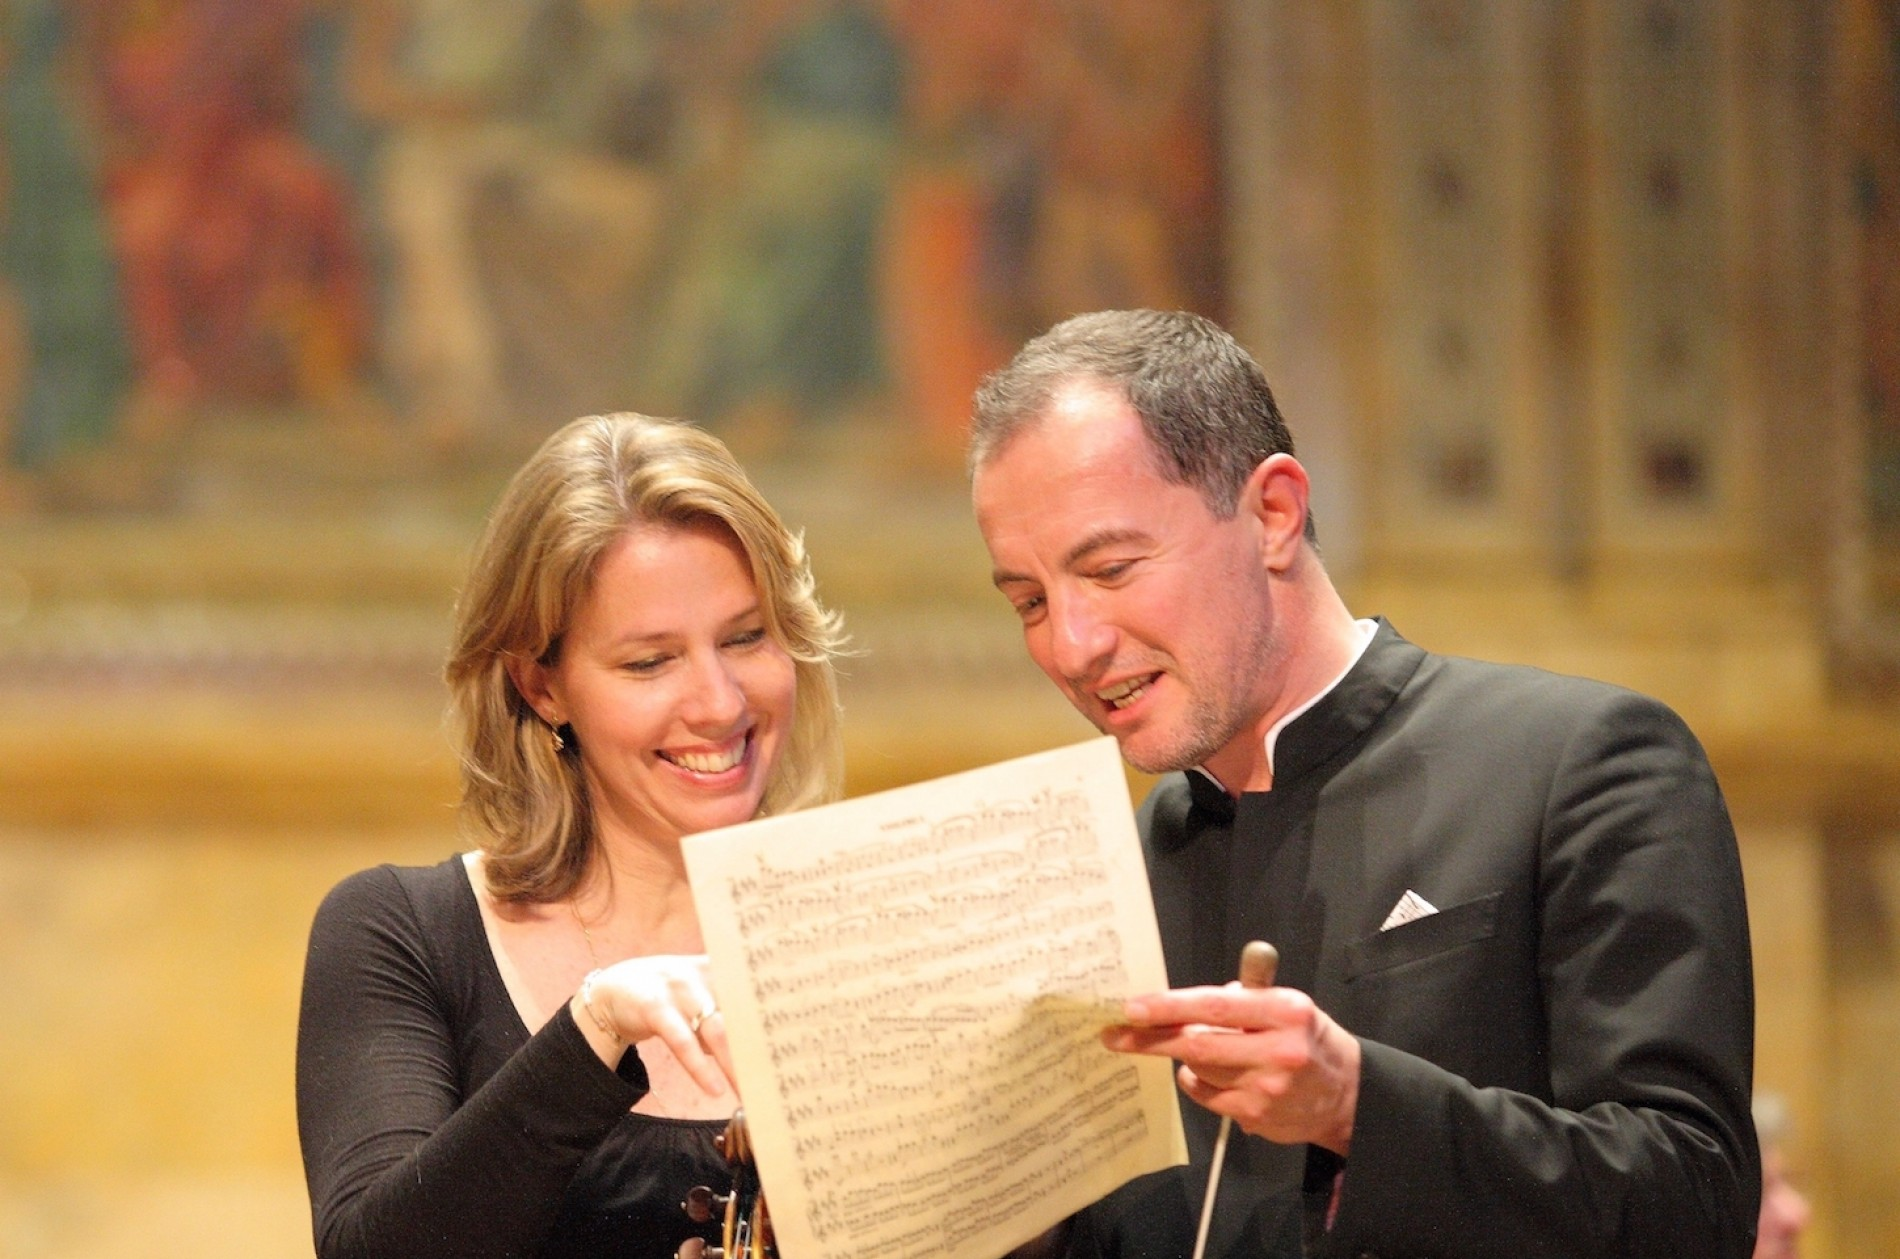 A female violinist and male conductor smile as they look over a page of music